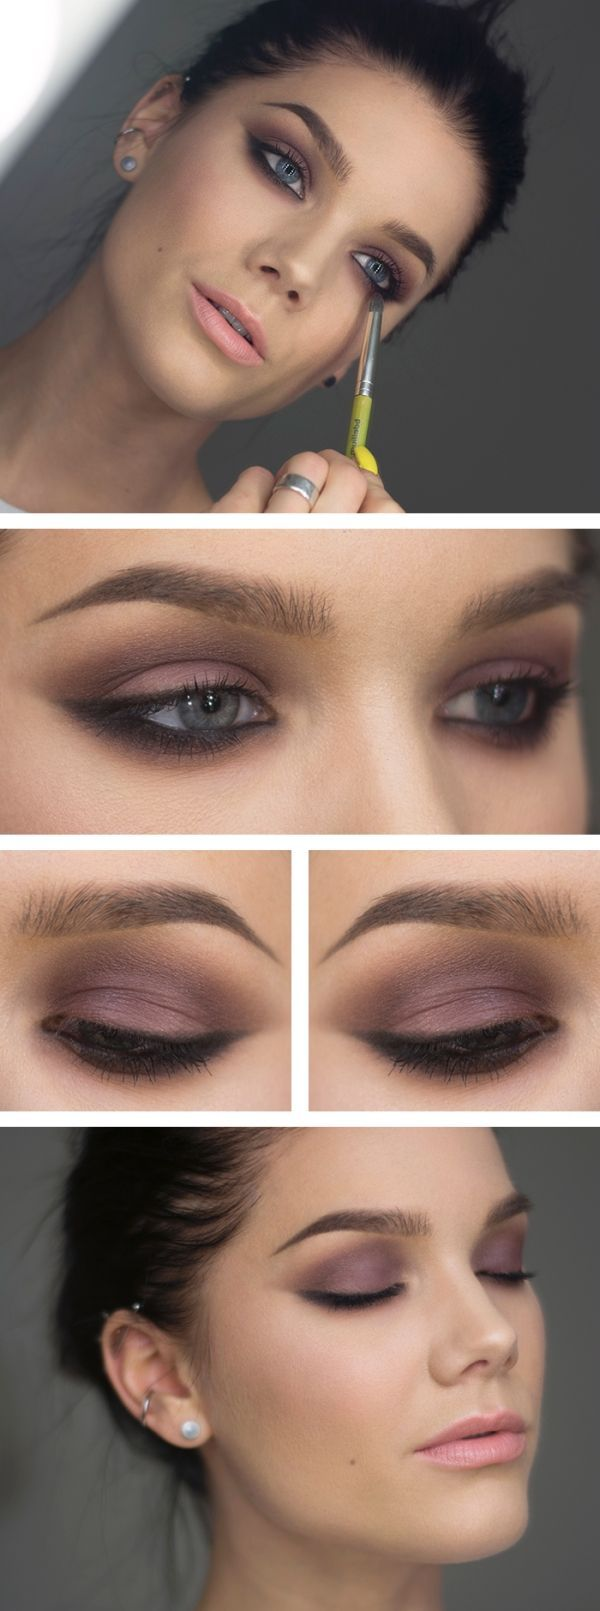 ♥ Linda Hallberg - incredible makeup artist. Very inspiring -- from her daily makeup blog. | Inspiration for upcoming projects by Adagio Images at